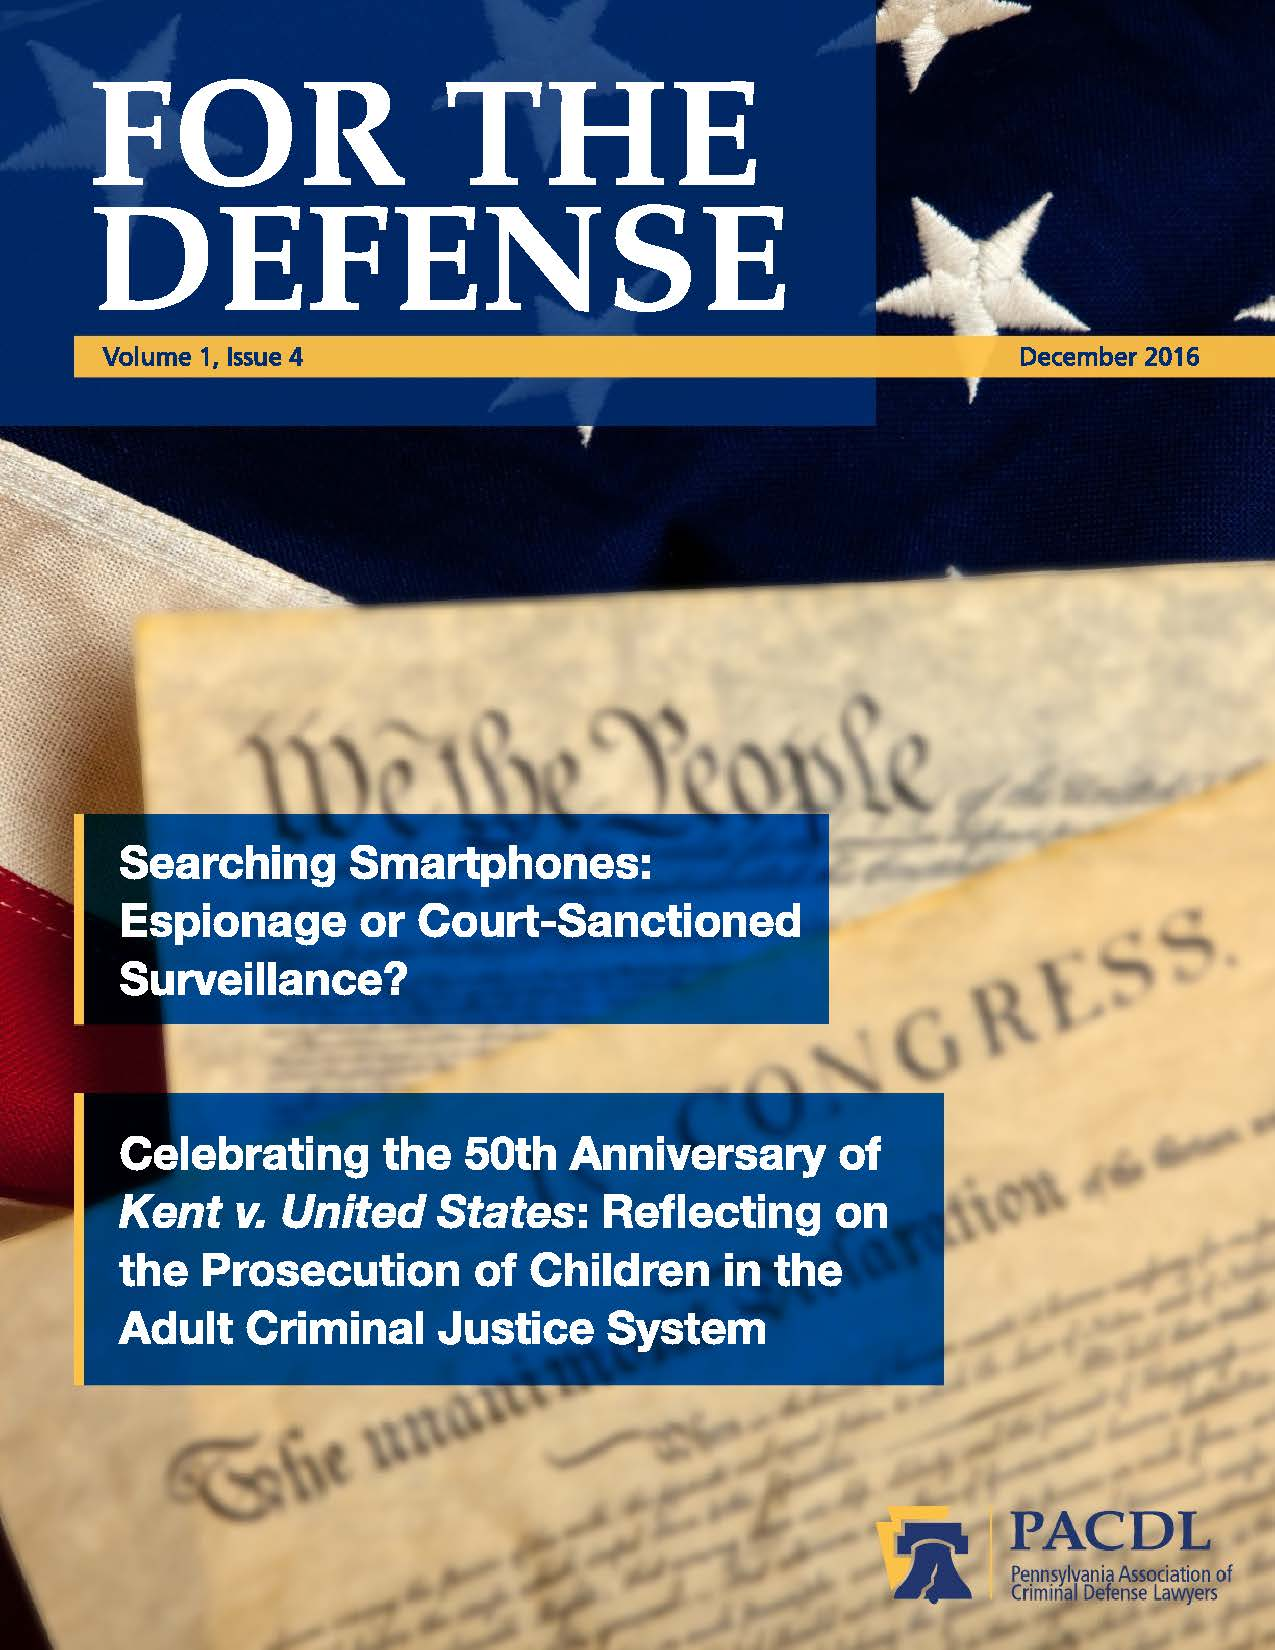 Co-Directors Author Article With JLC's Marsha Levick On Prosecuting Children As Adults